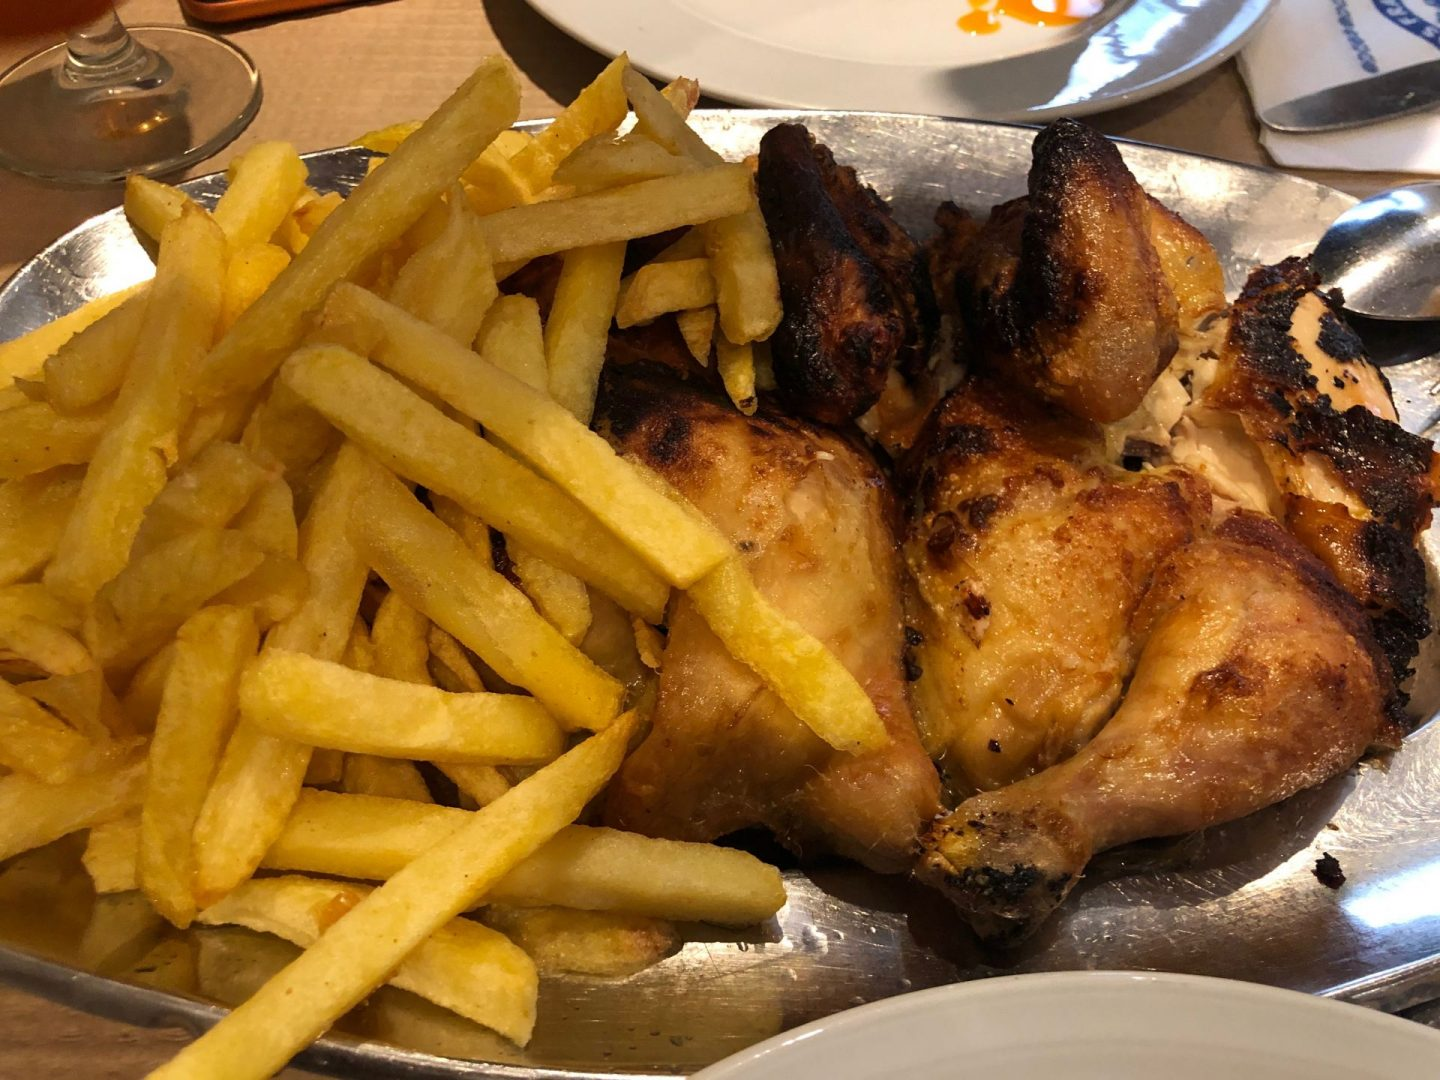 Roast chicken and fries on plate